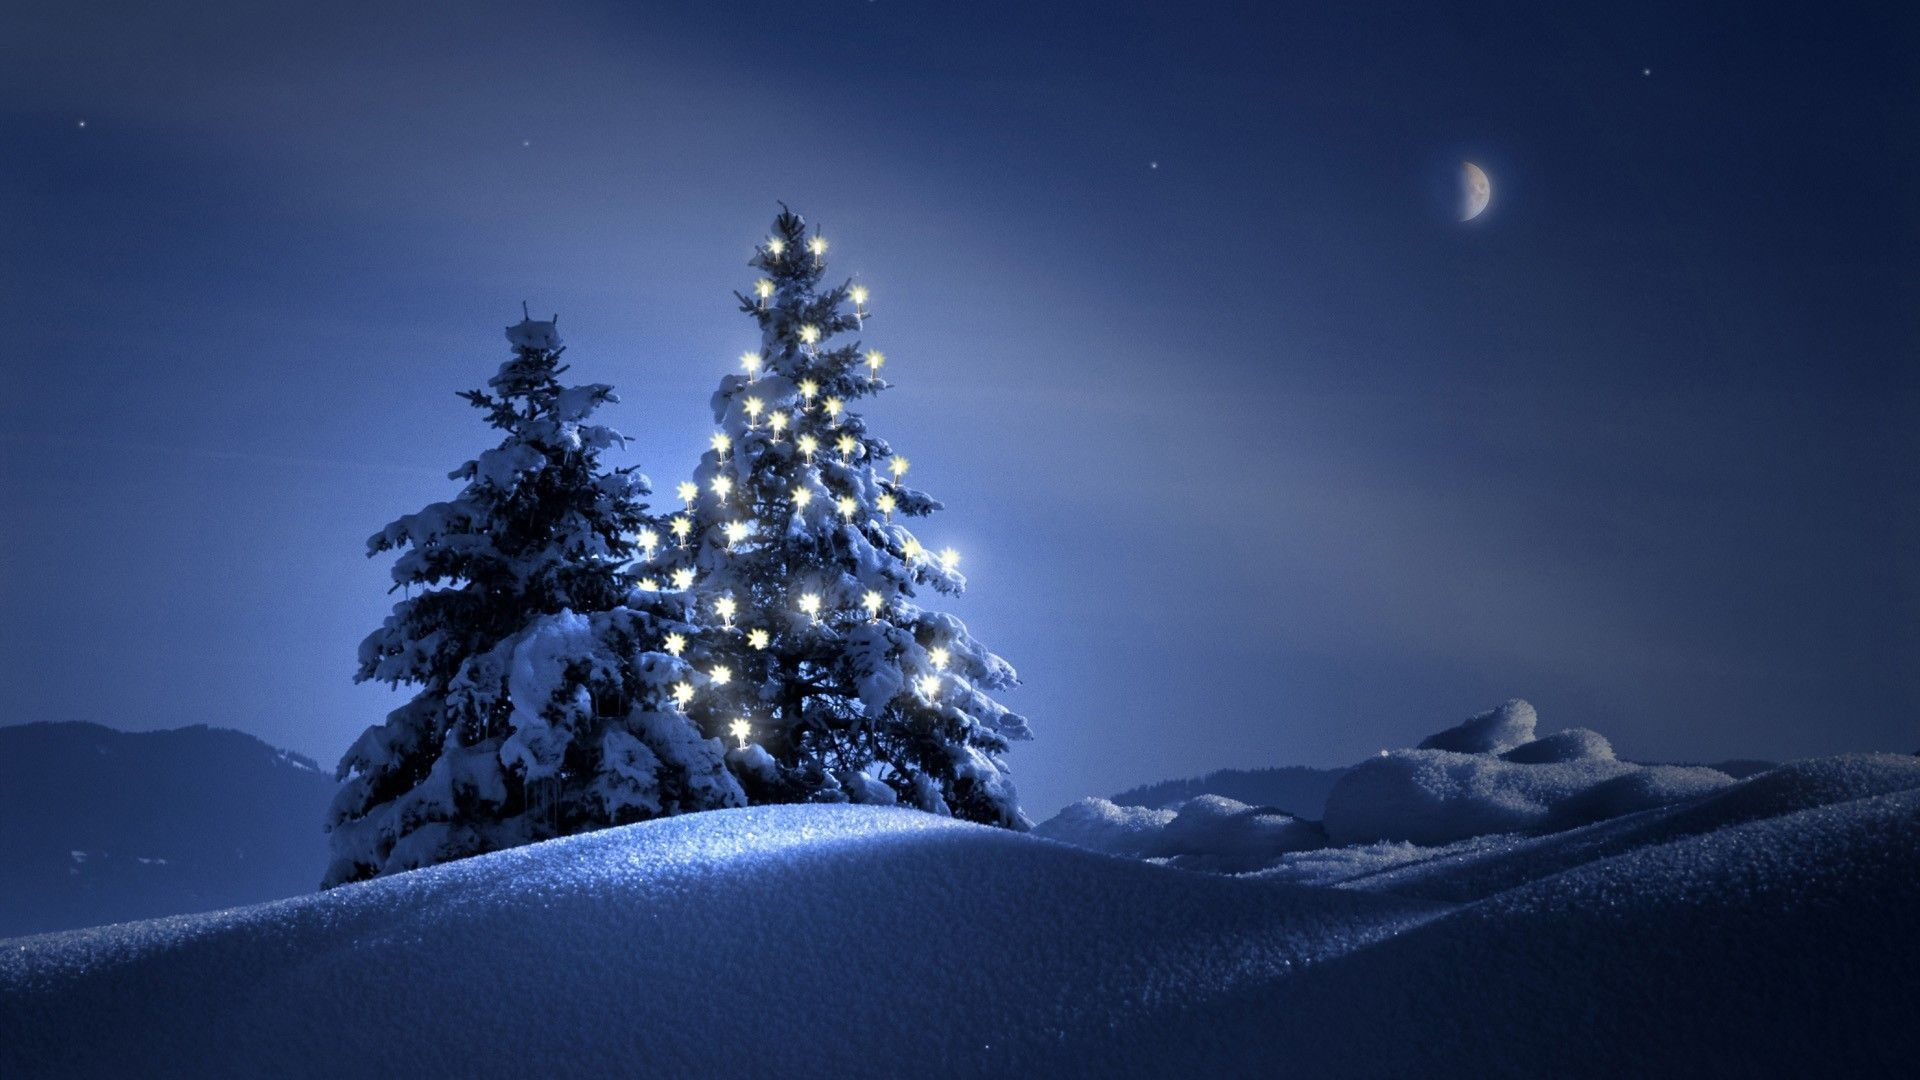 General 1920x1080 Christmas Christmas Tree snow night